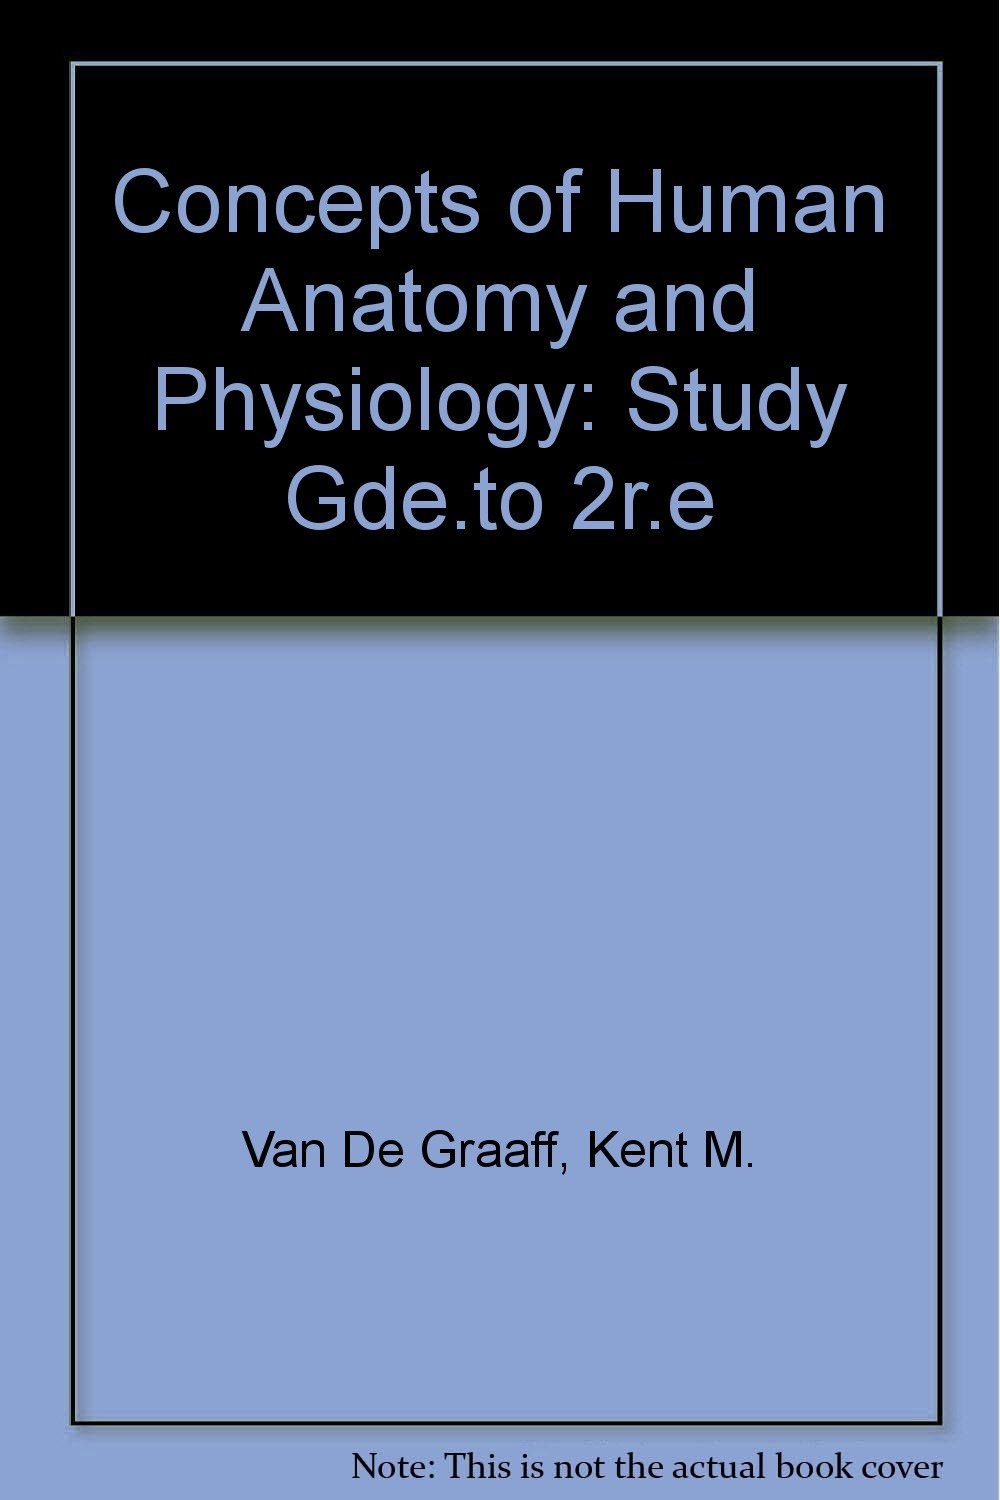 Student Study Guide For Concepts Of Human Anatomy And Physiology